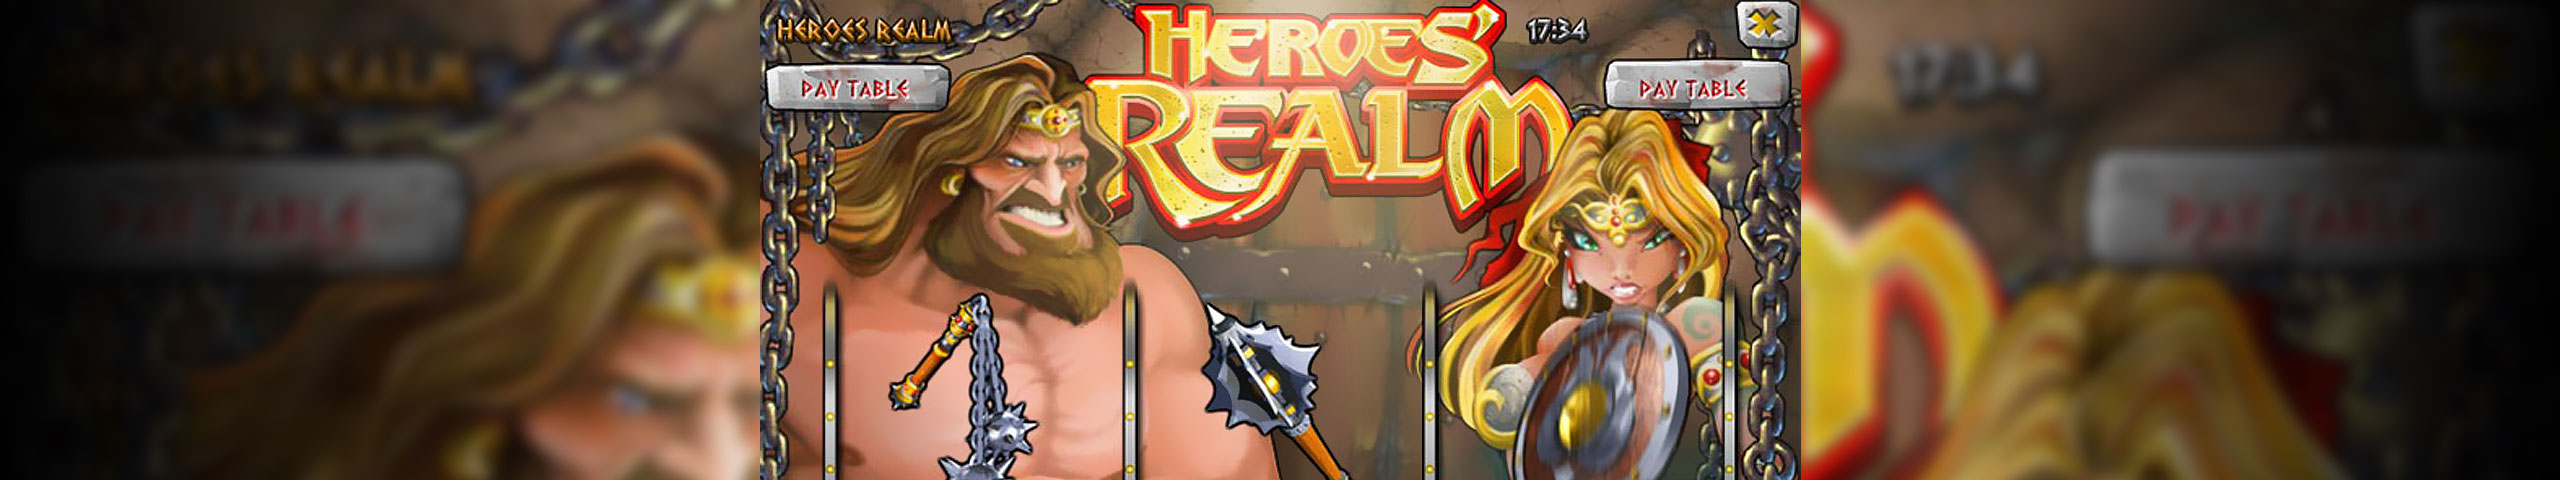 Spelautomater Heroes Realm, Rival Gaming Slider - Wyrmspel.com